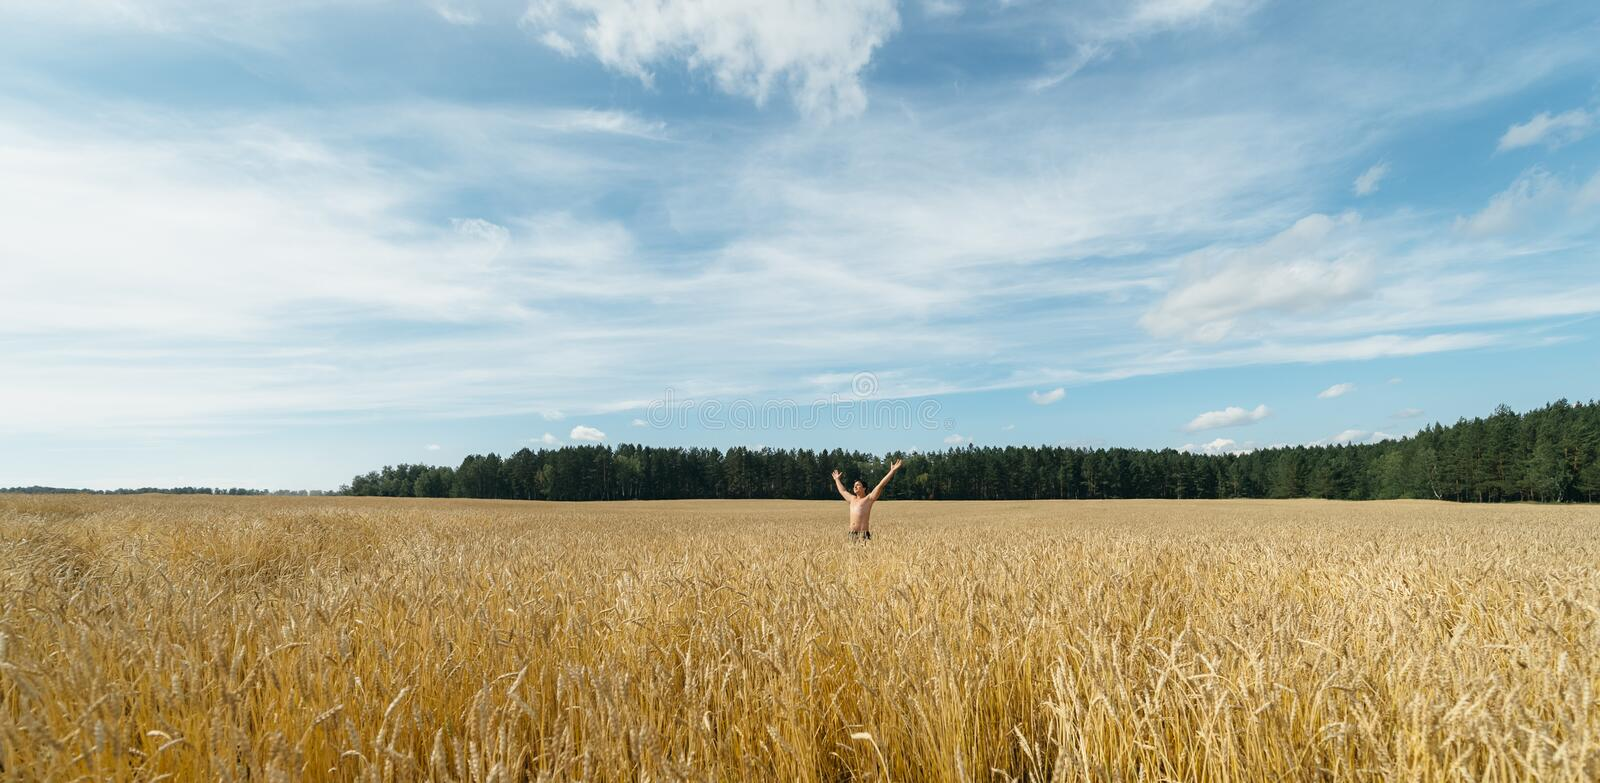 Man in a wheat field royalty free stock images